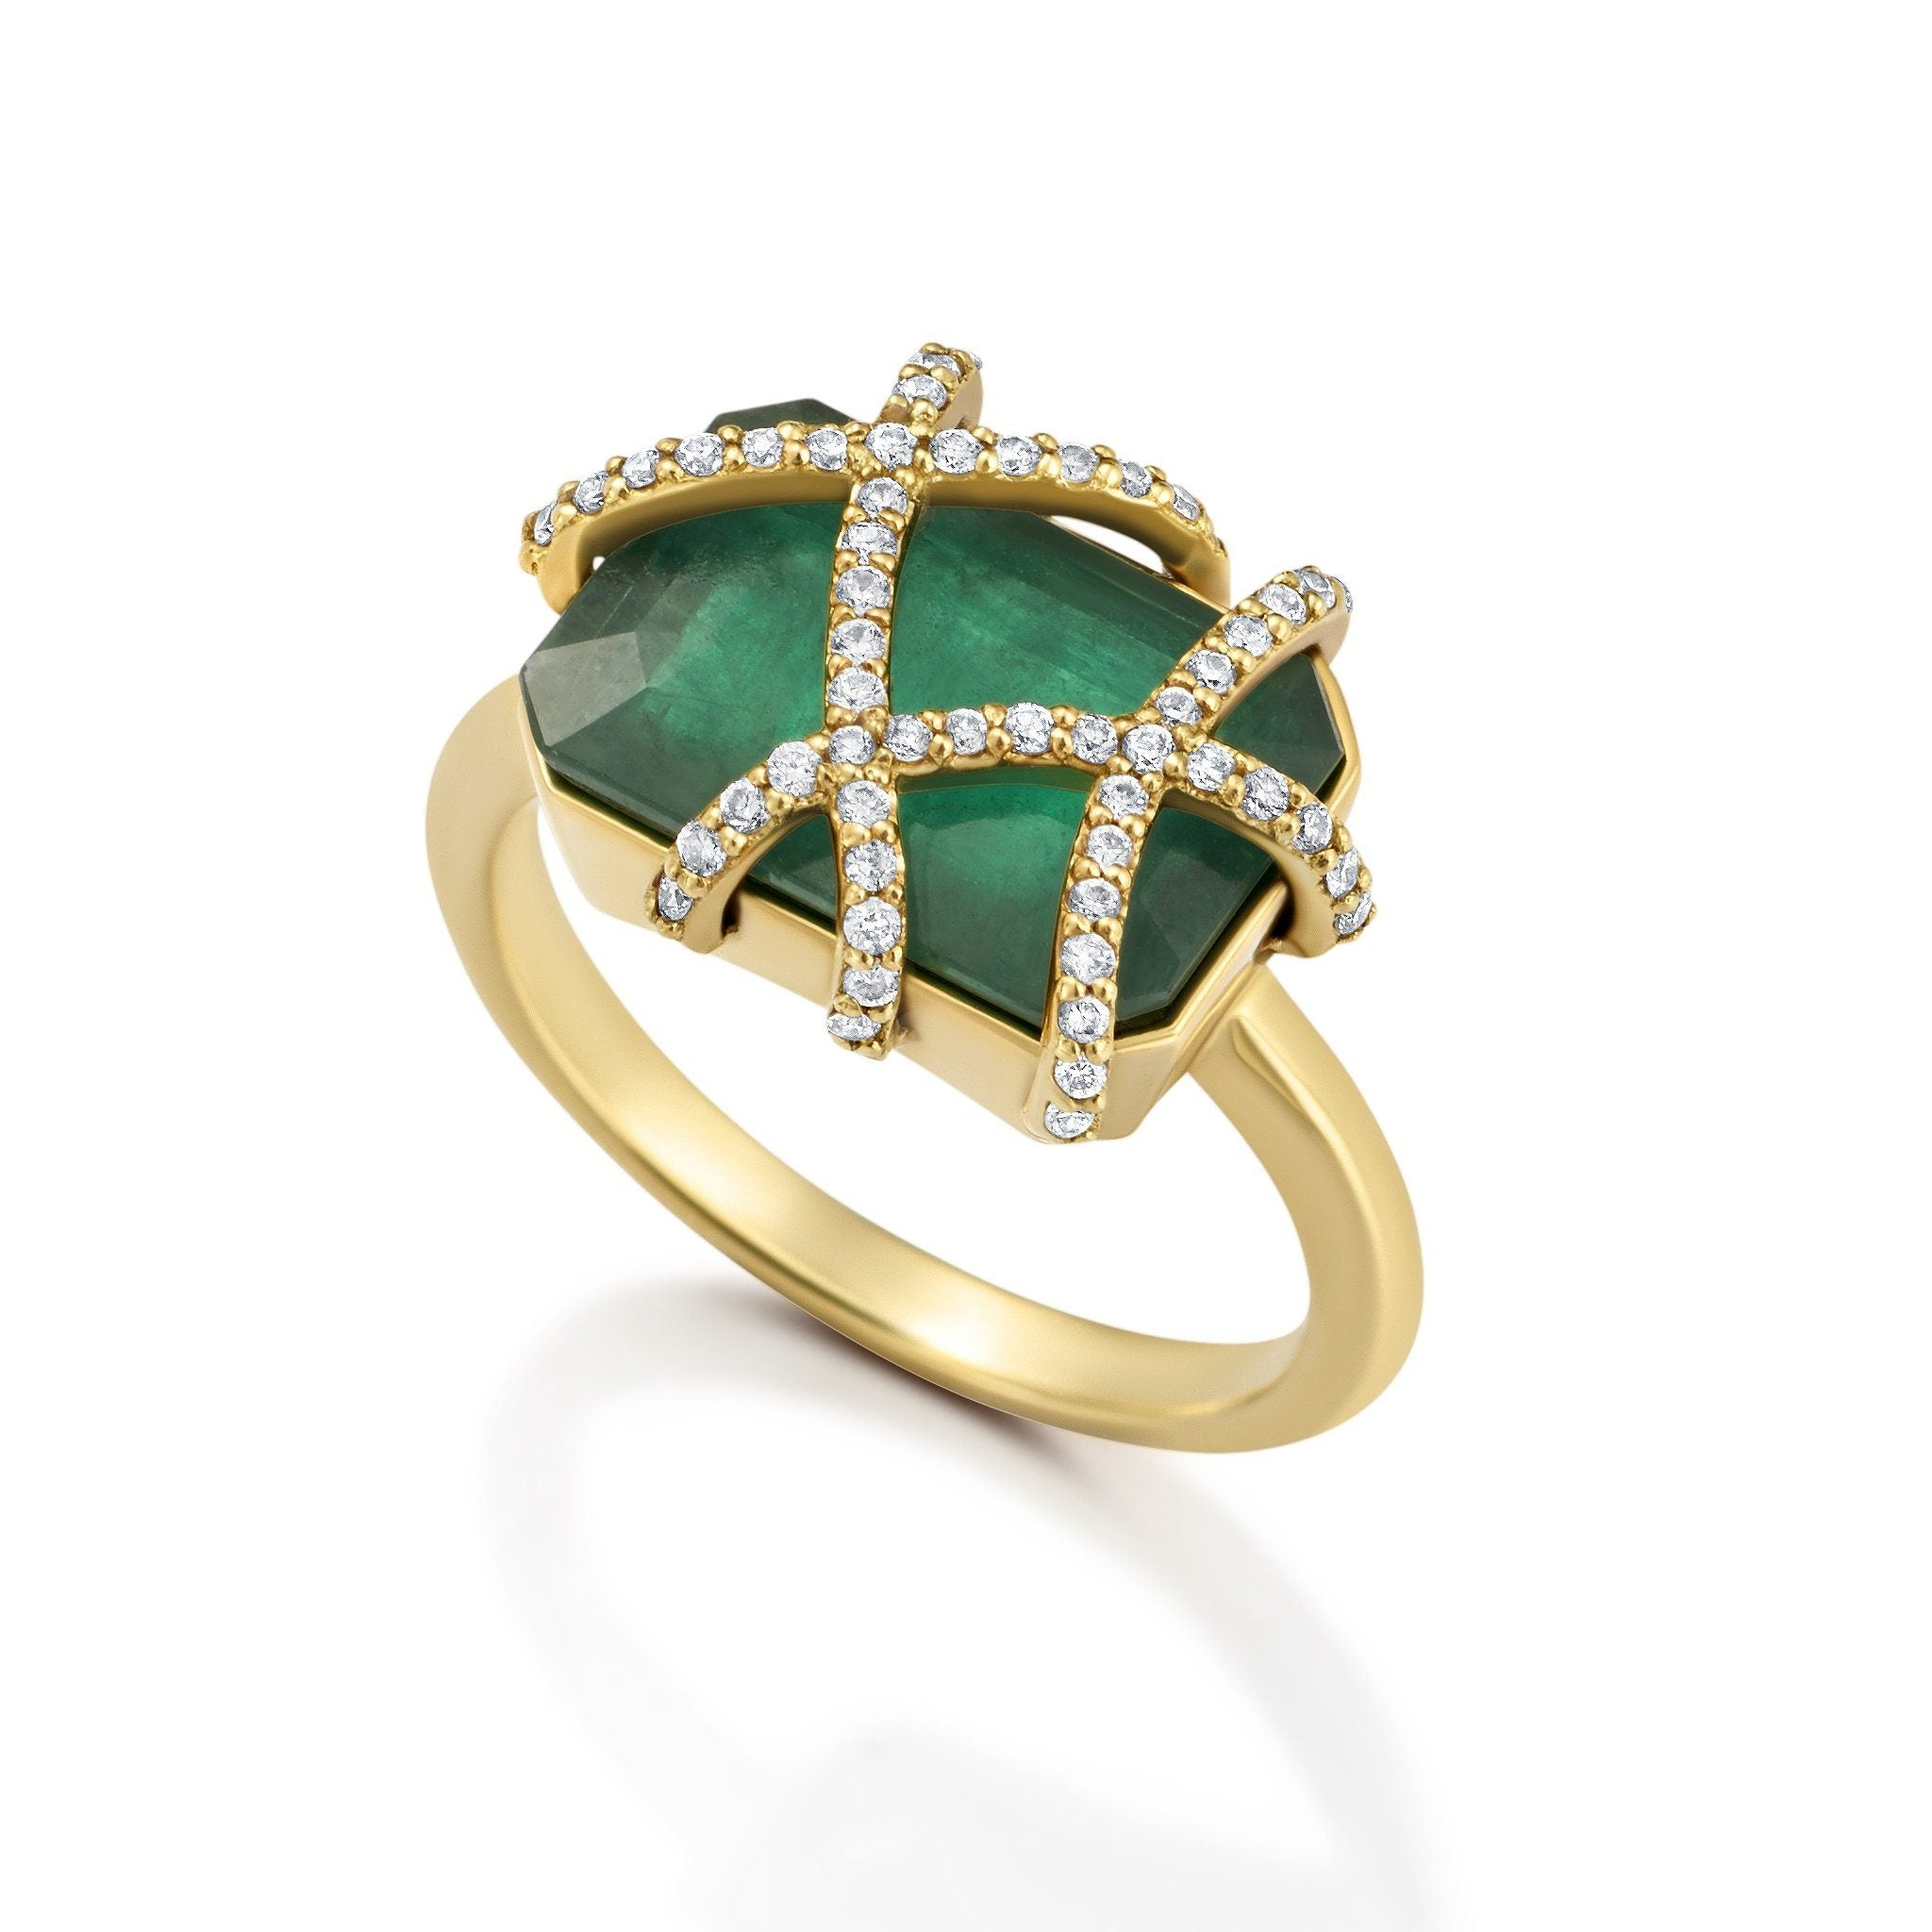 EMERALD CAGE RING Bespoke Jewelry Bayou with Love